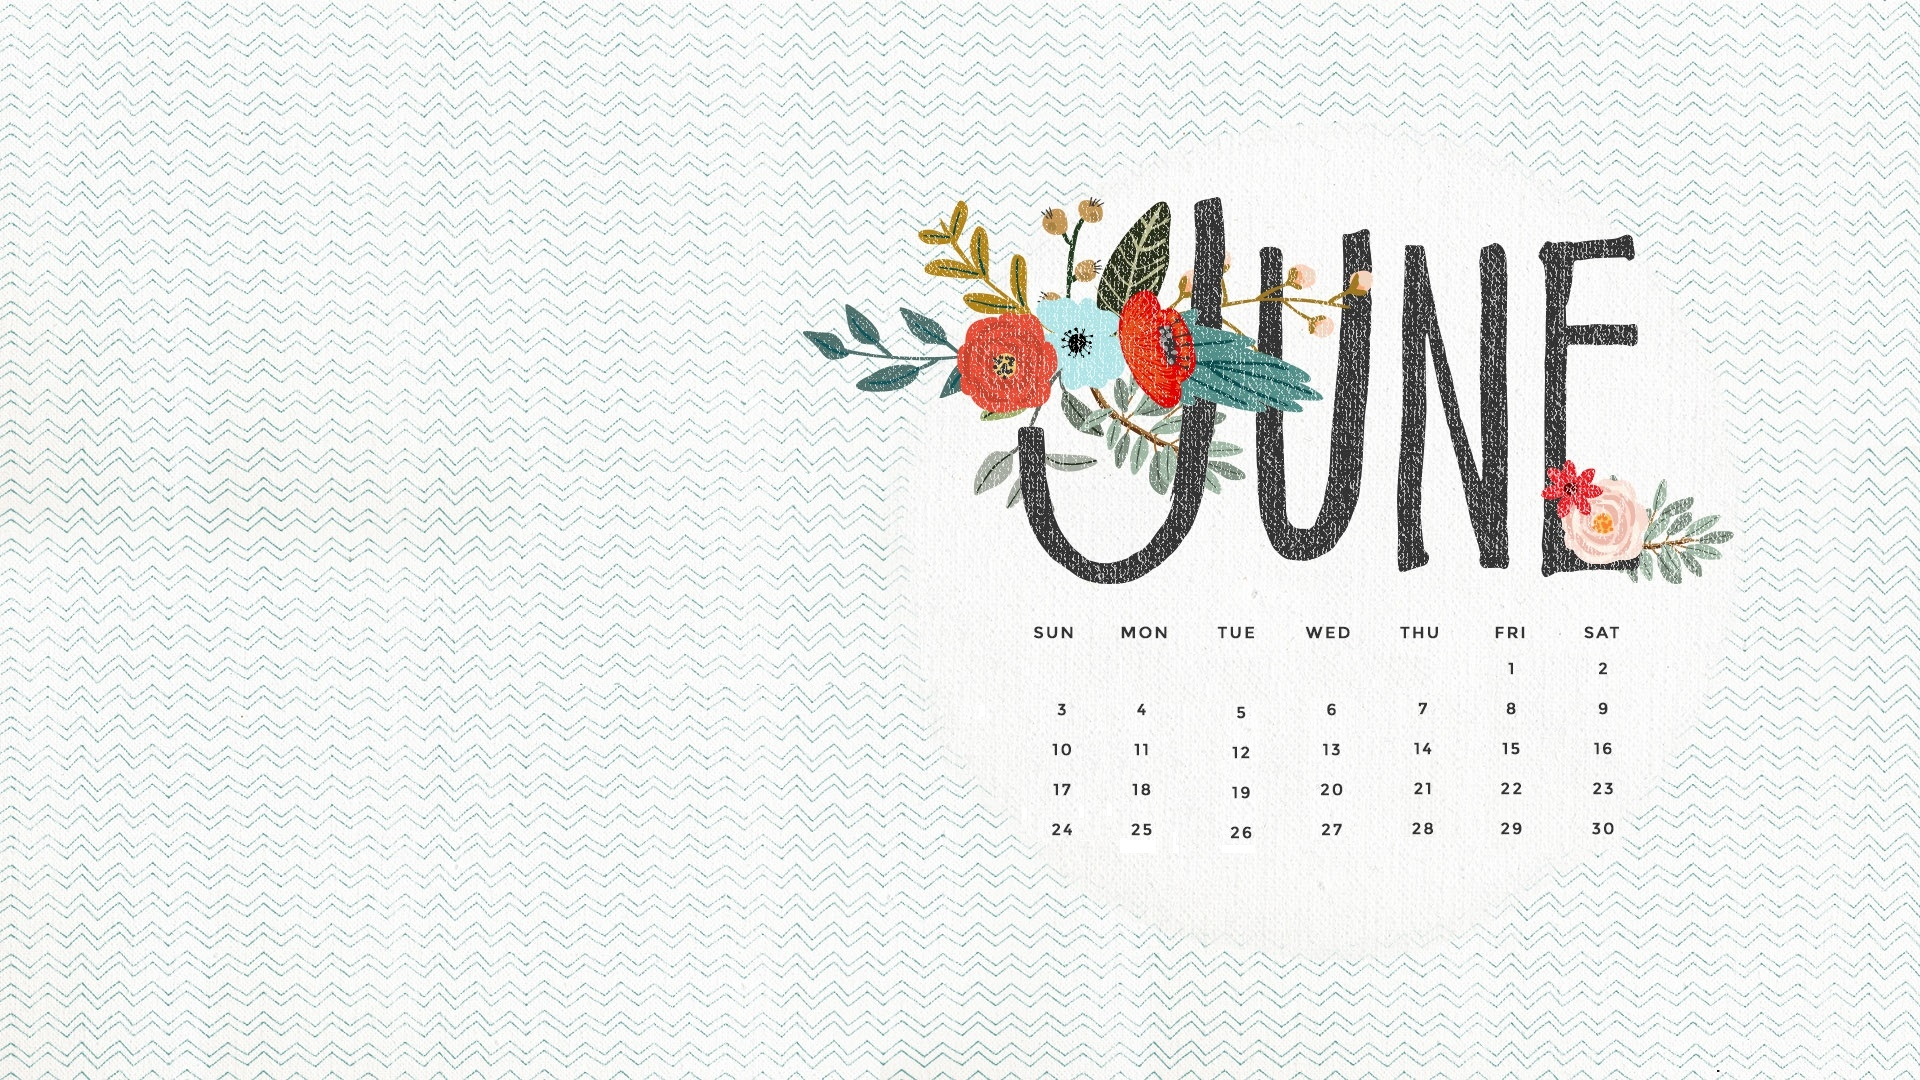 june 2019 hd wallpaper with calendar::June 2019 iPhone Calendar Wallpaper